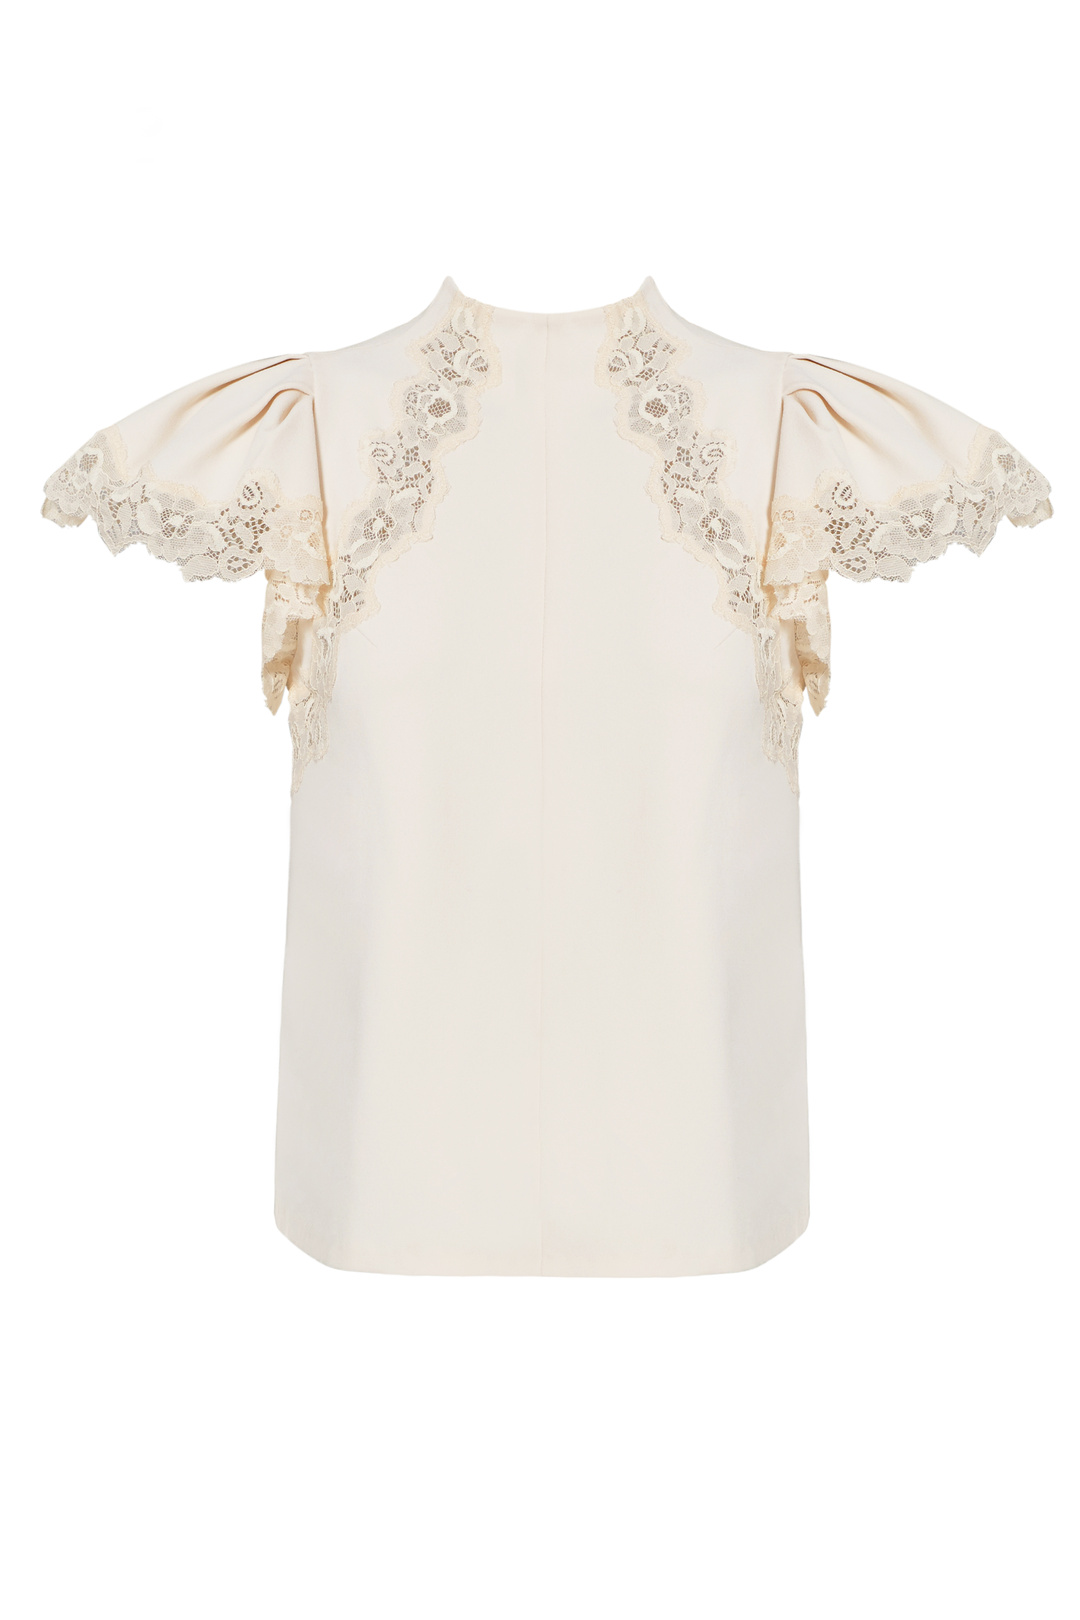 d12bffe8b10eb Details about Rebecca Taylor White Ivory Ruffled Floral Lace Cap Sleeve 8  Blouse  325-  176